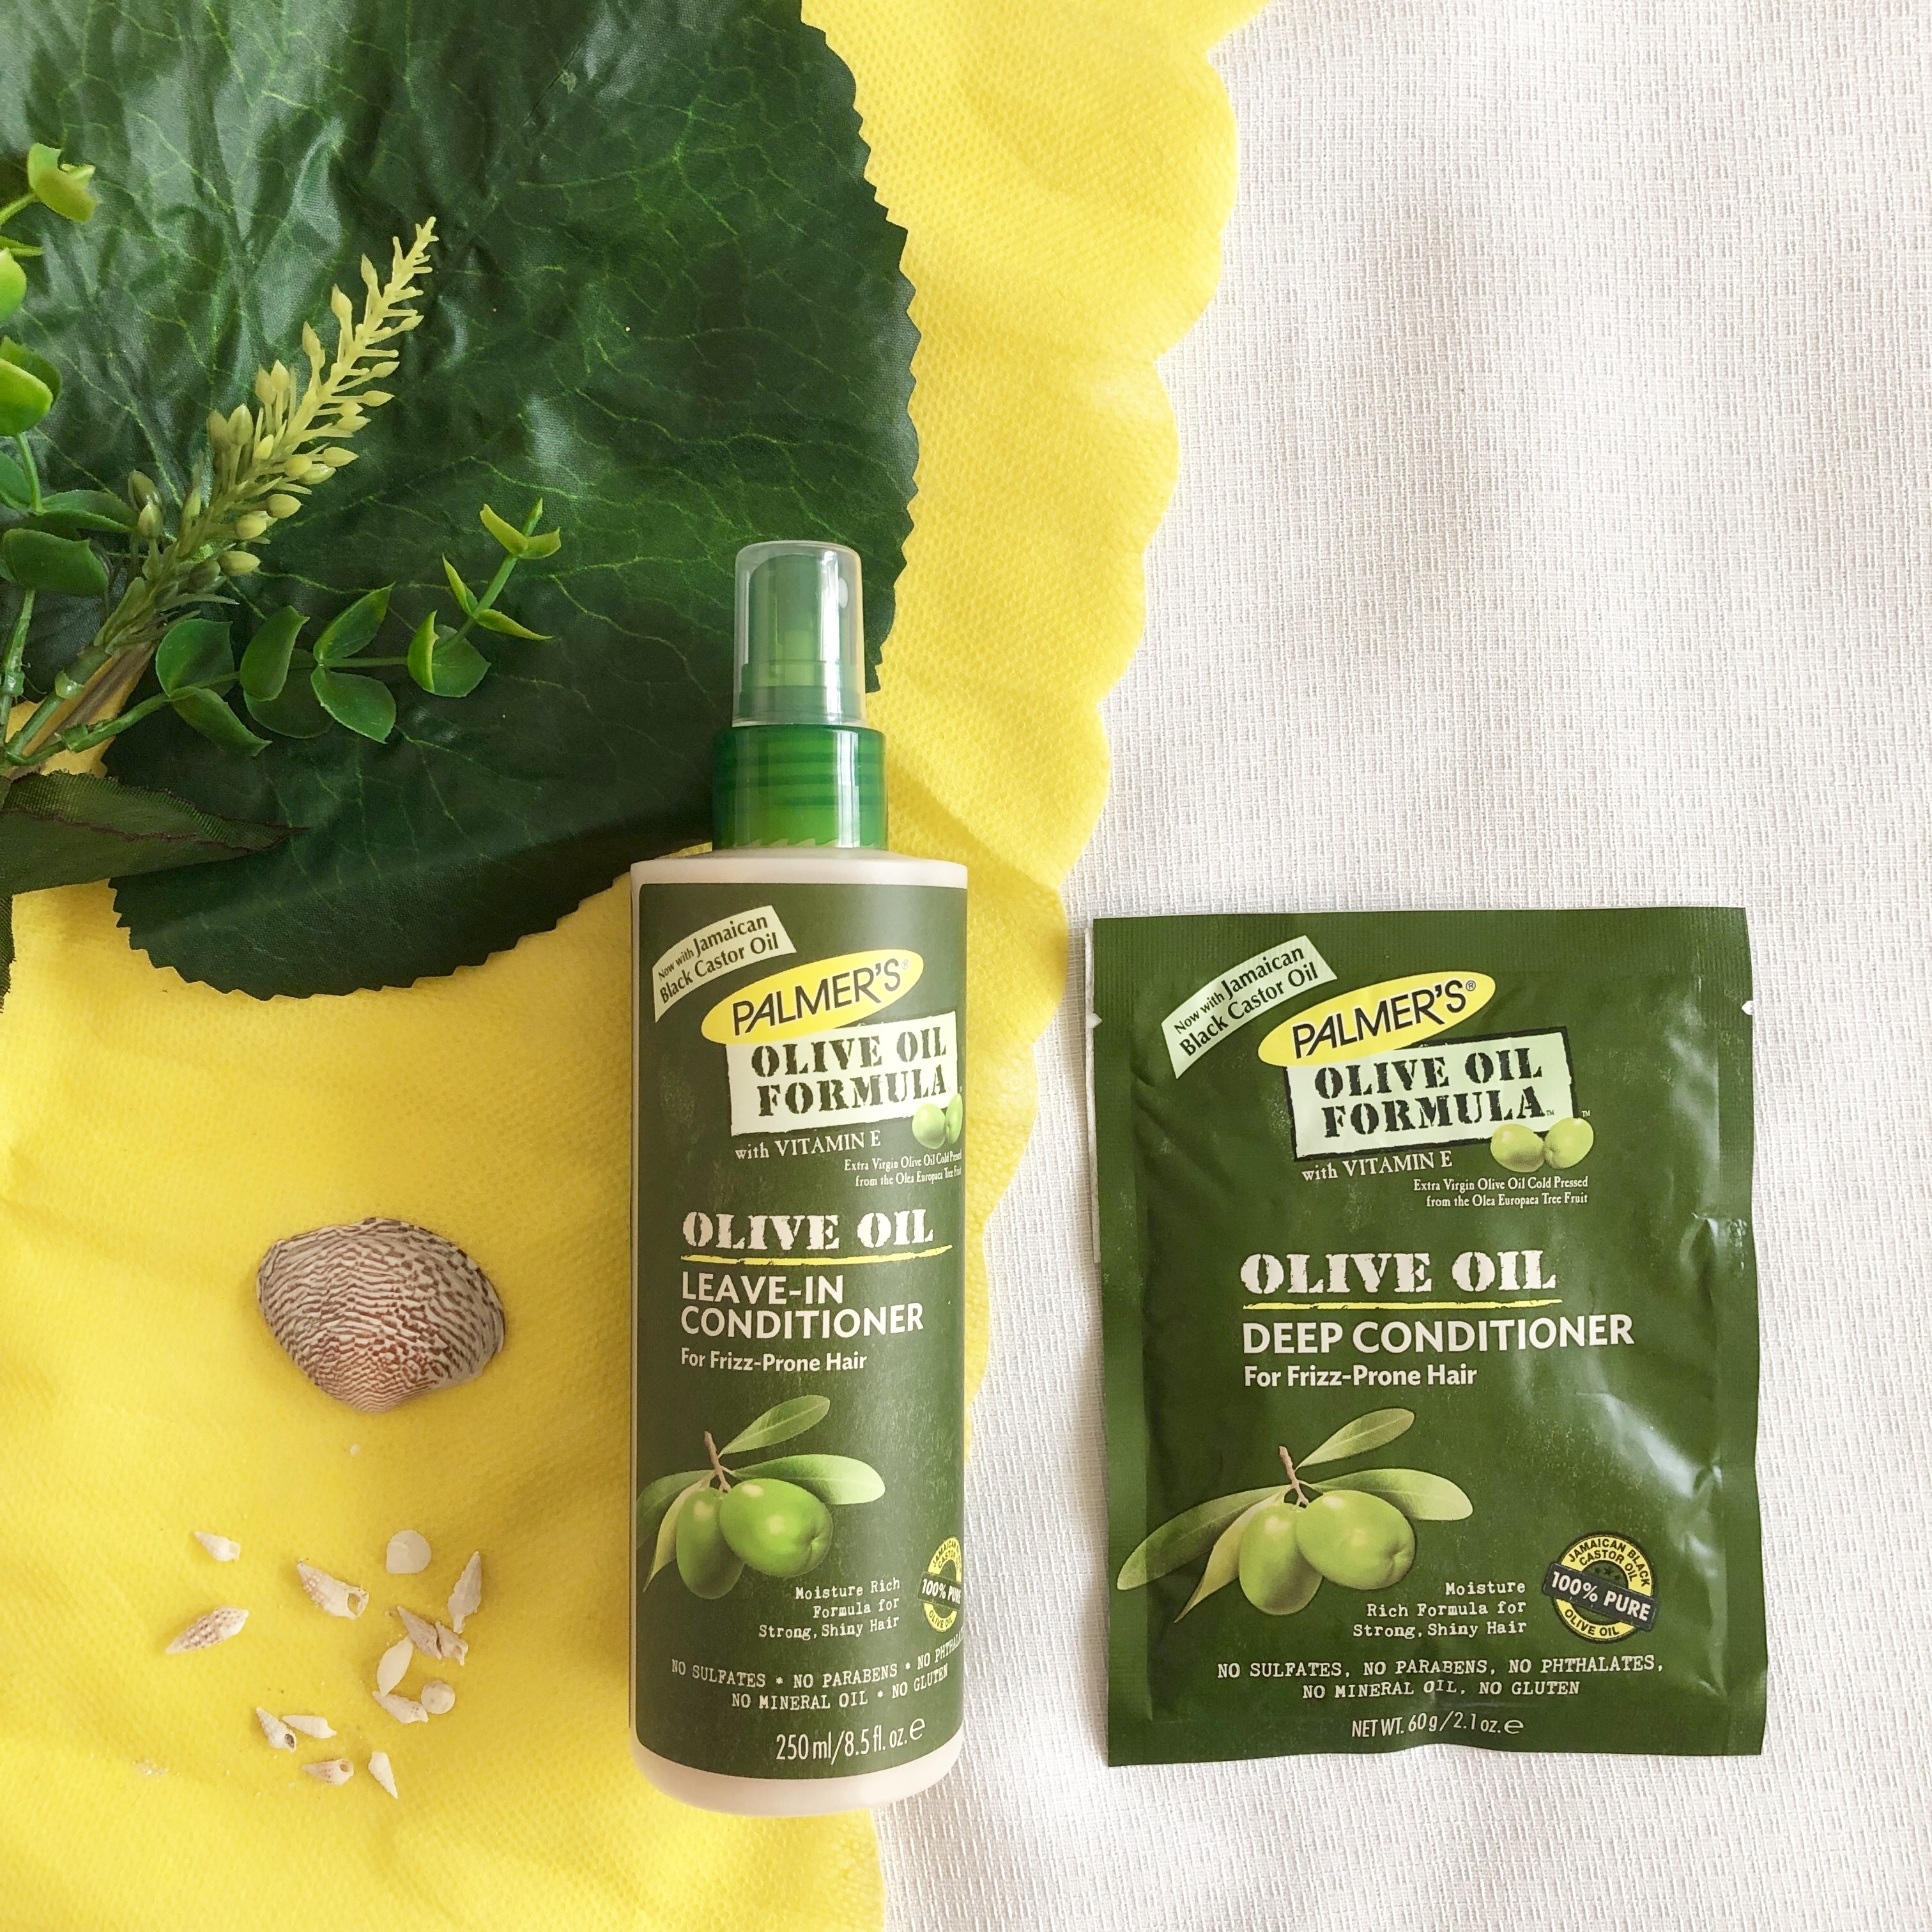 Palmer S Olive Oil Formula Hair Care Review Mummy On My Mind